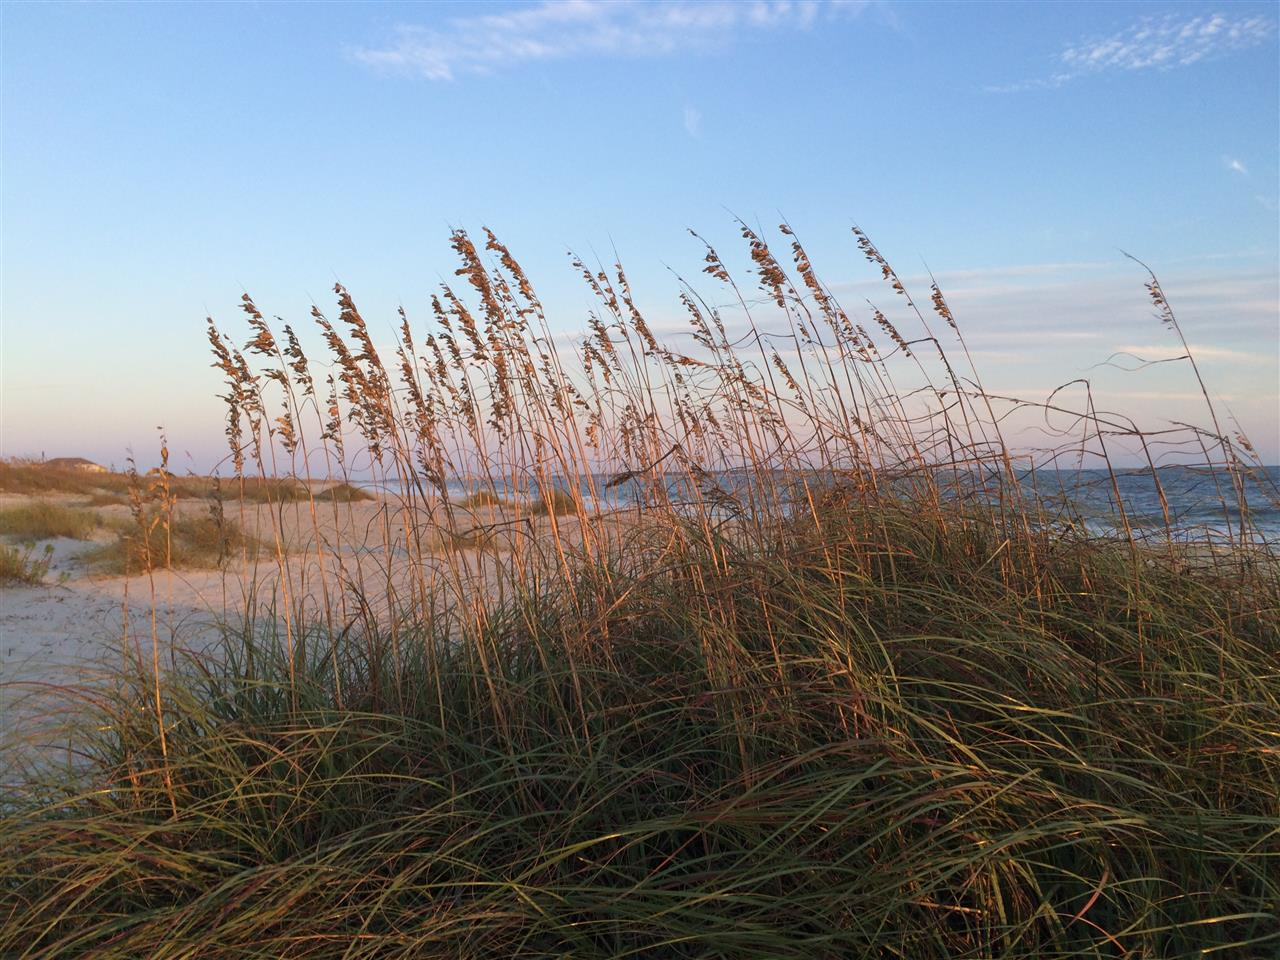 The Carolina beaches are a popular vacation destination for North and South Carolinians and out-of-staters alike. #SeaOats #OakIslandNC #LeadingRElocal